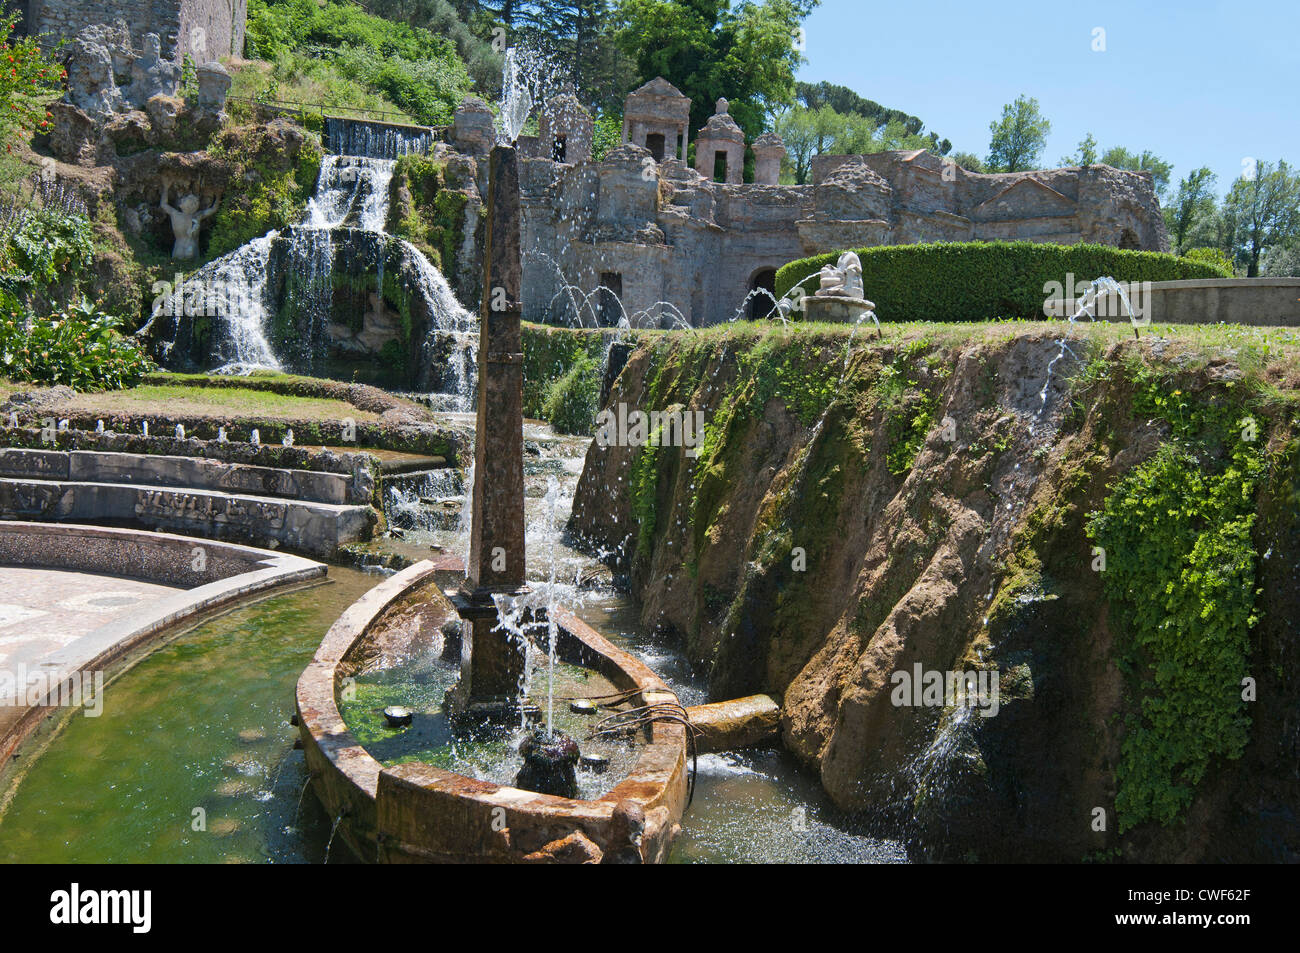 Tivoli gardens italy distance from rome garden ftempo for Olive garden fashion square mall